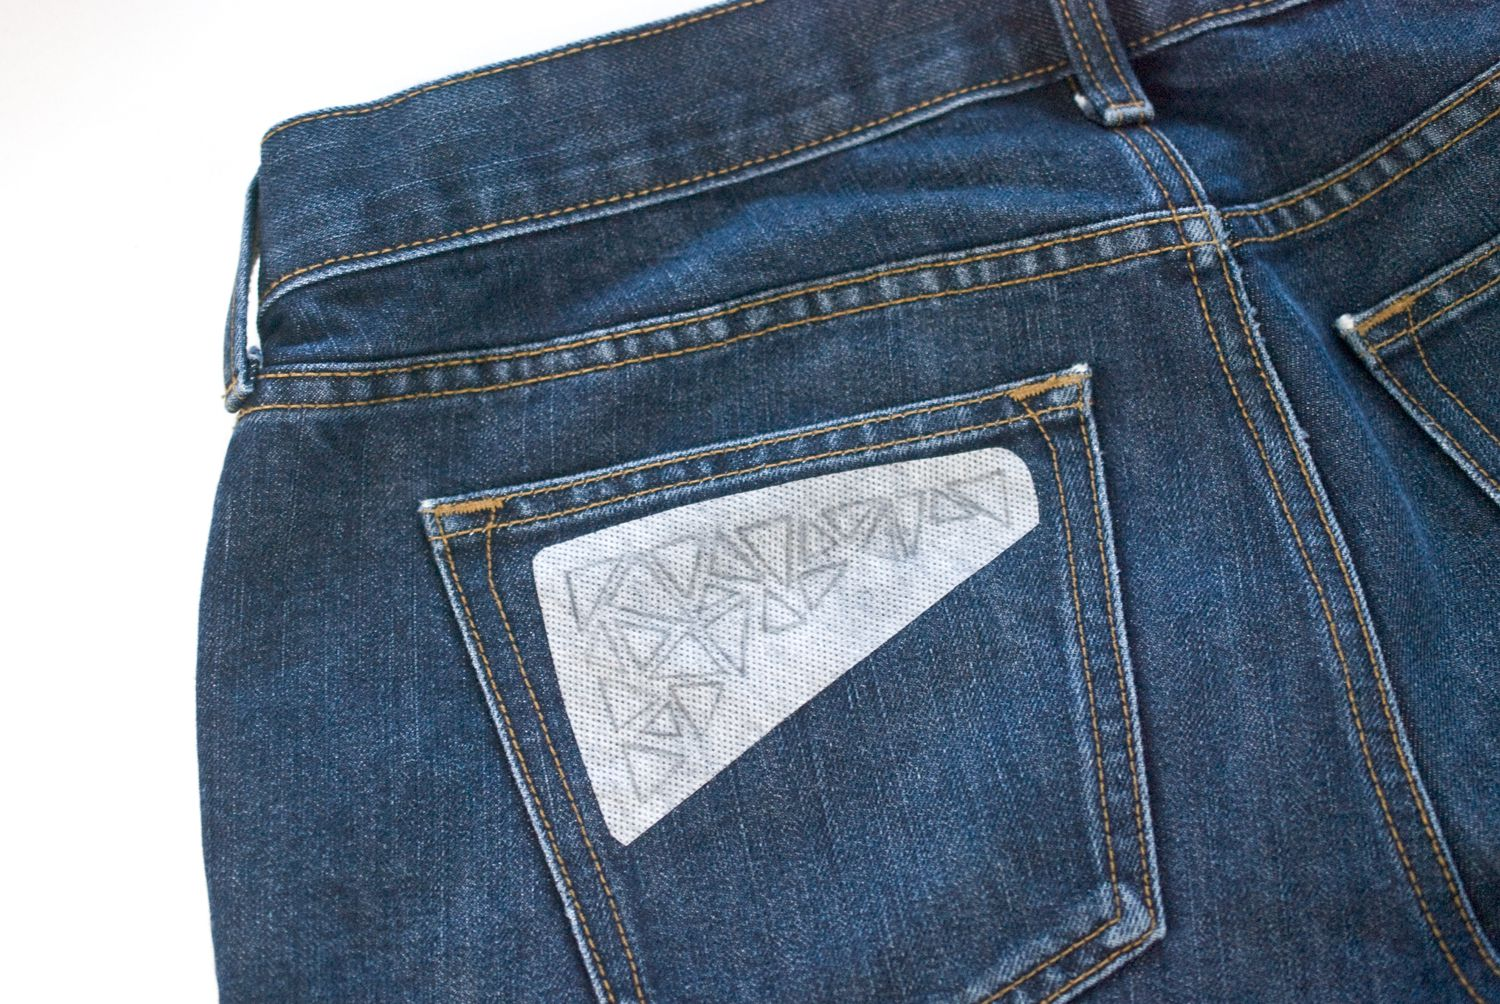 7b84862dd8fc A Guide for Hand Embroidery on Denim